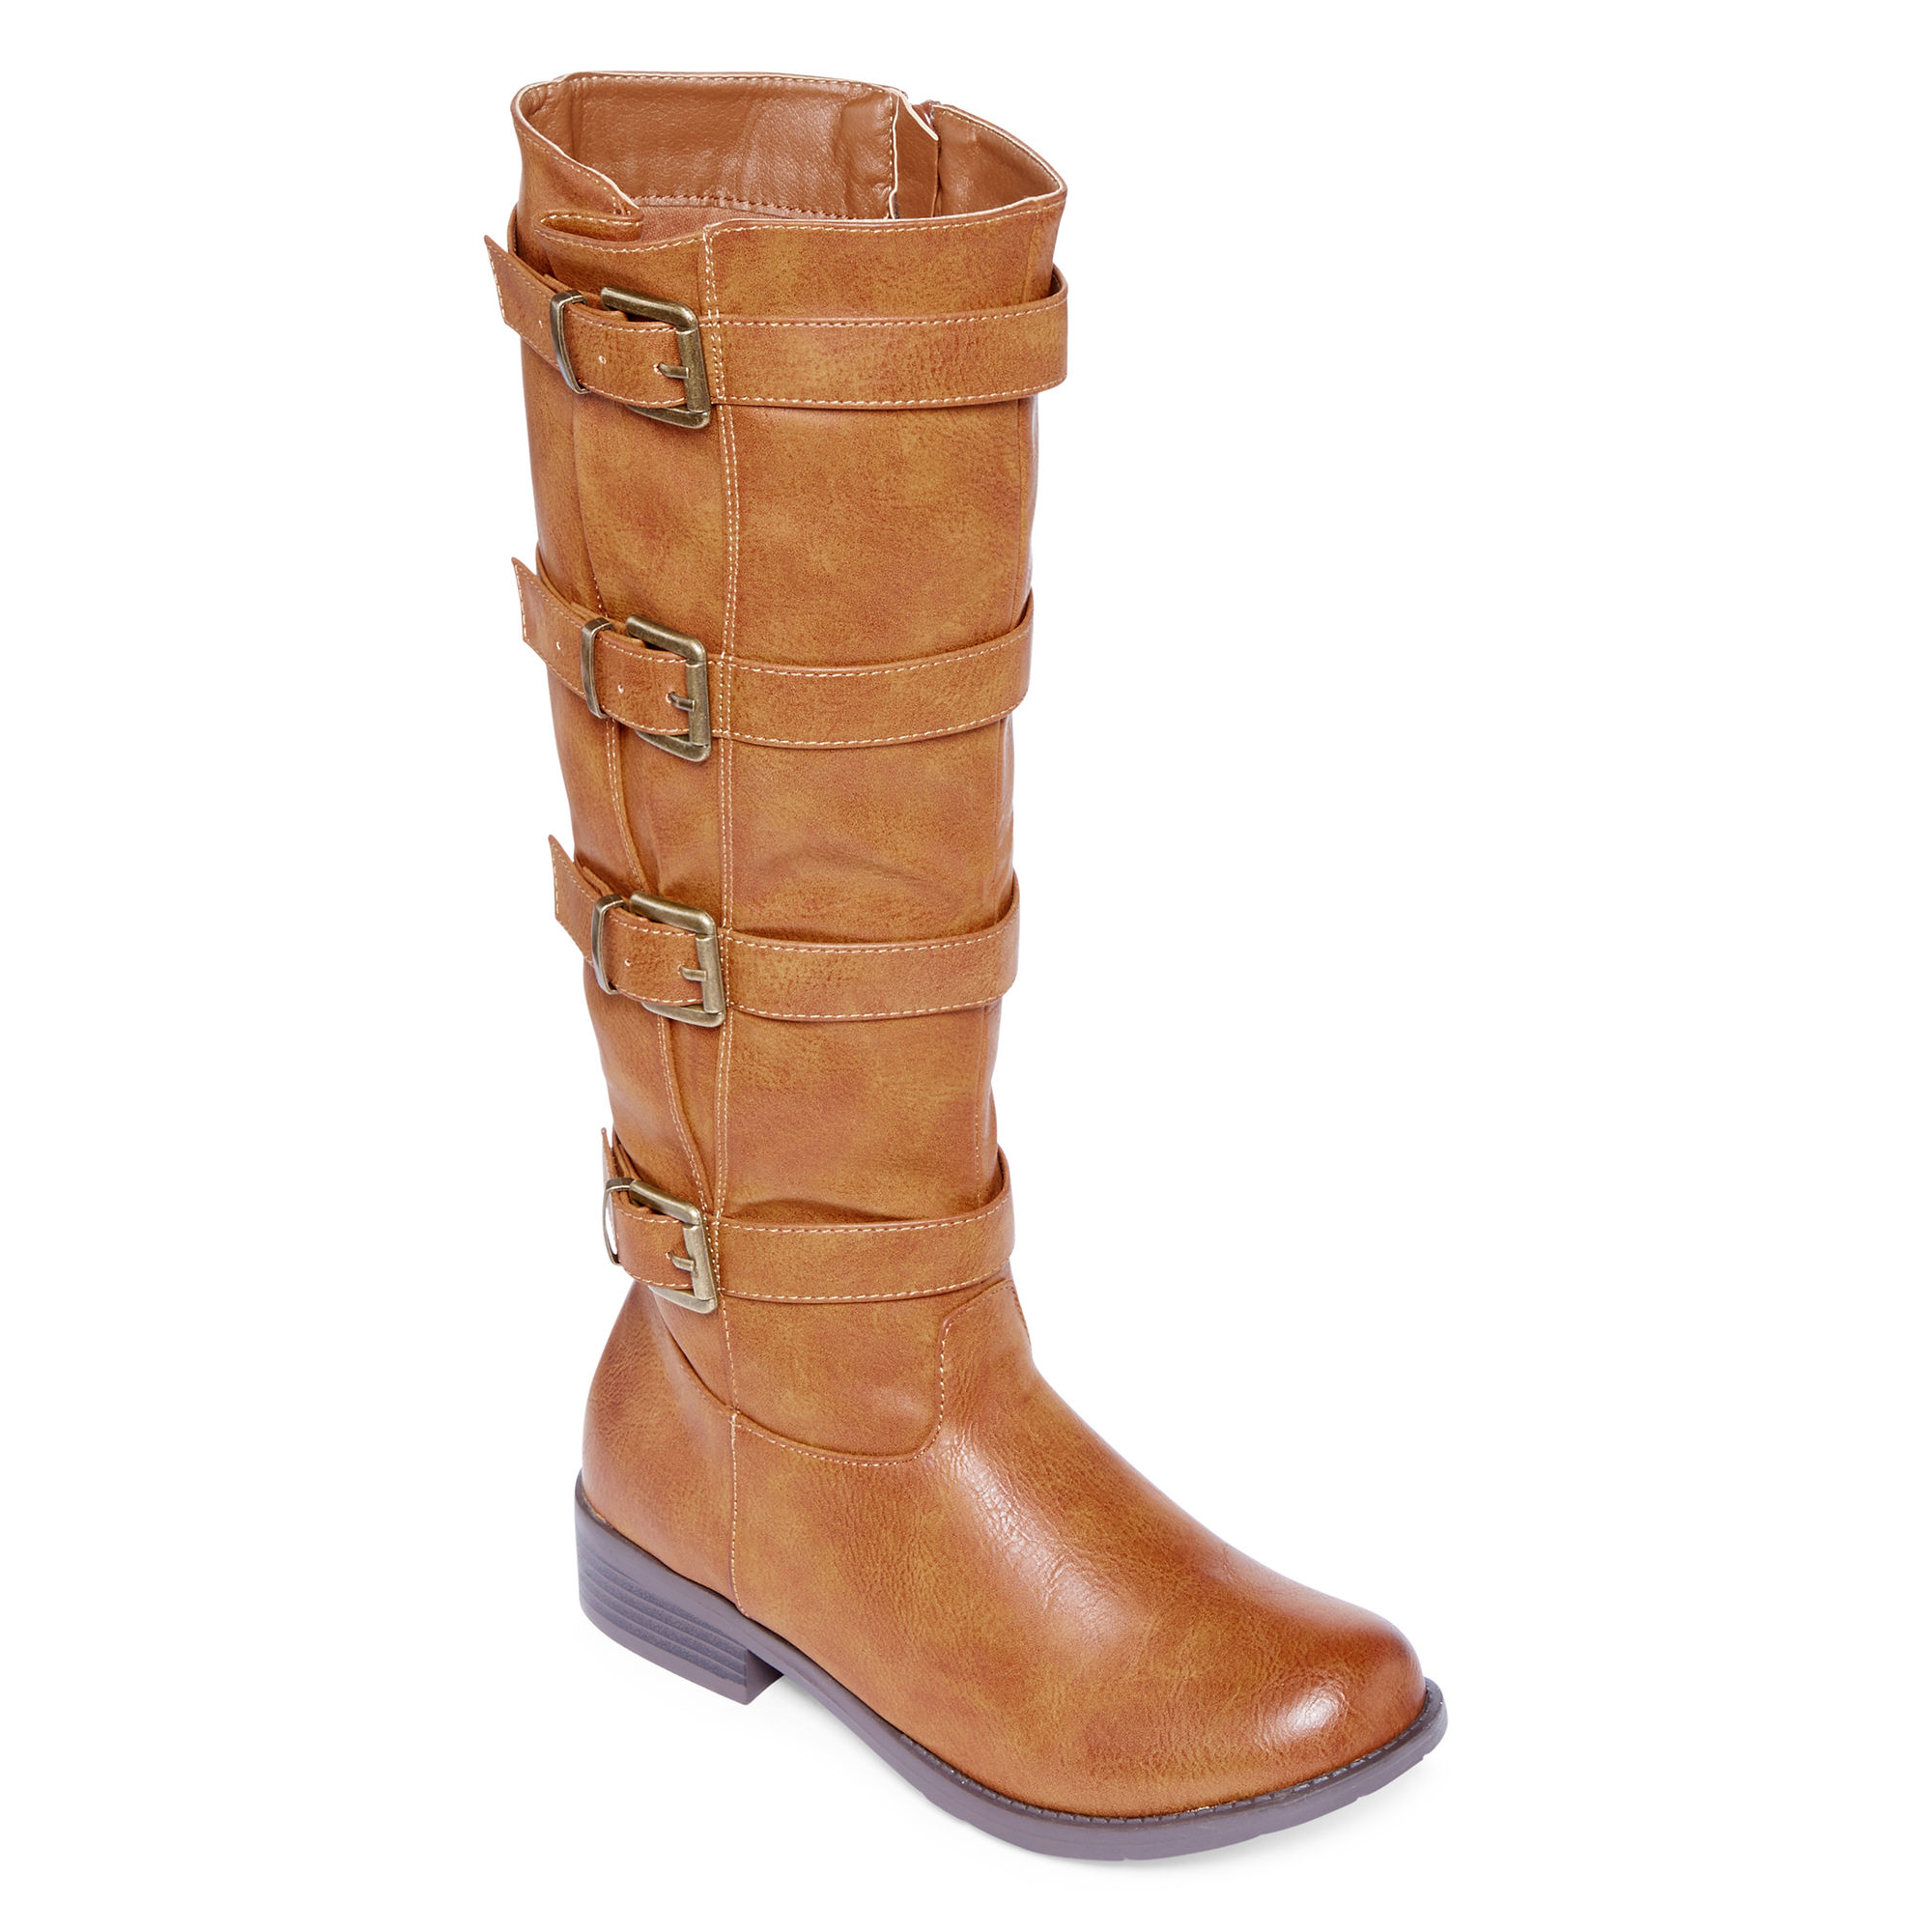 2 Lips Too Jake Womens Wide Calf Riding Boots